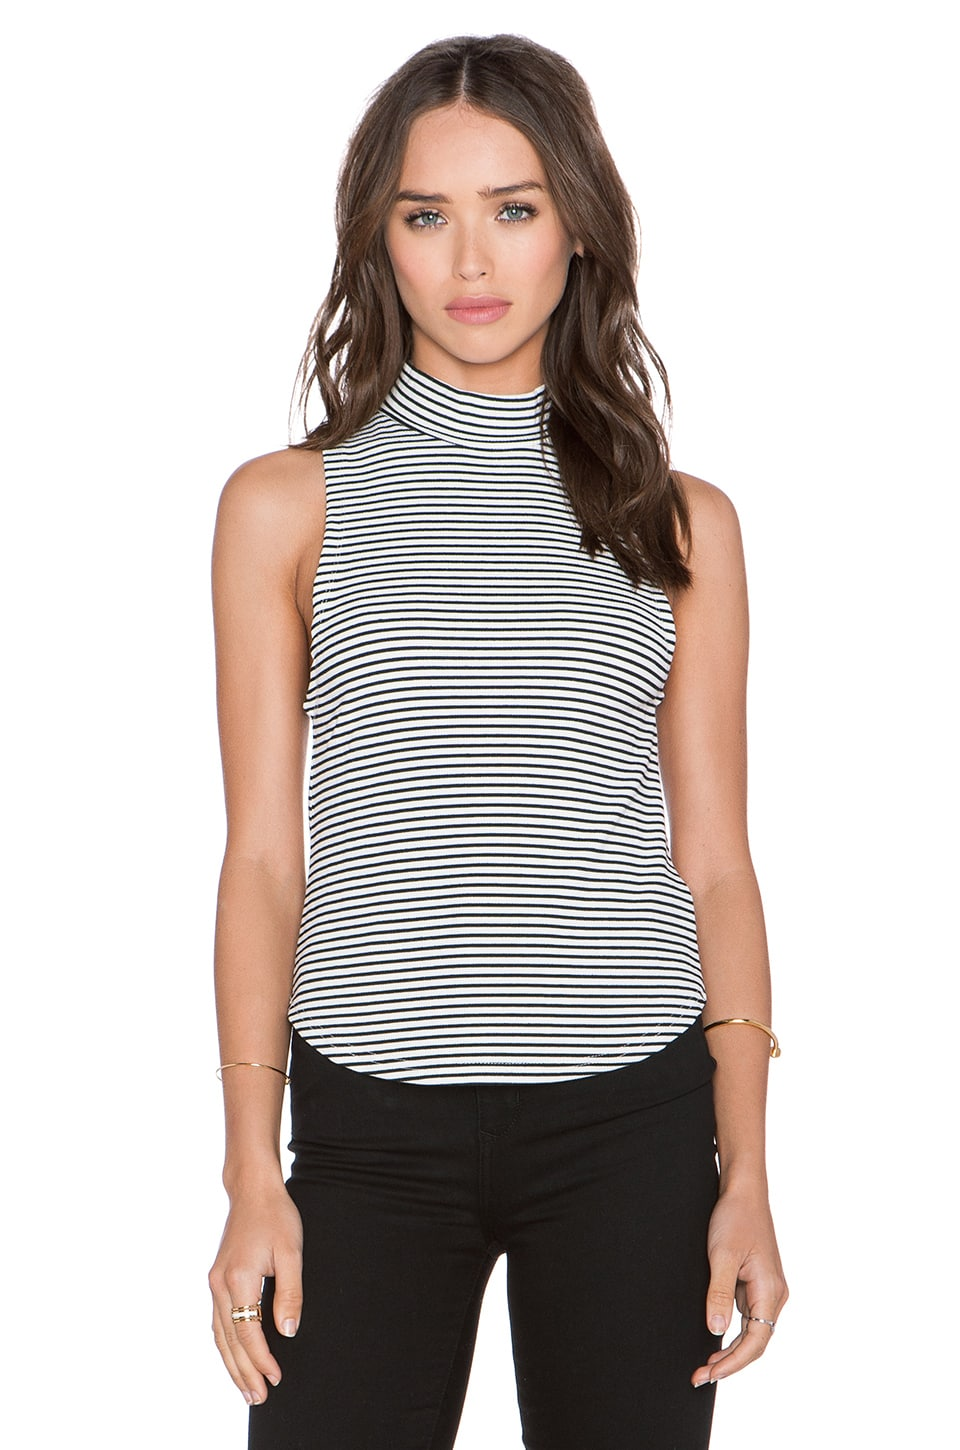 Knot Sisters Teressa Tank in Black & White Stripe